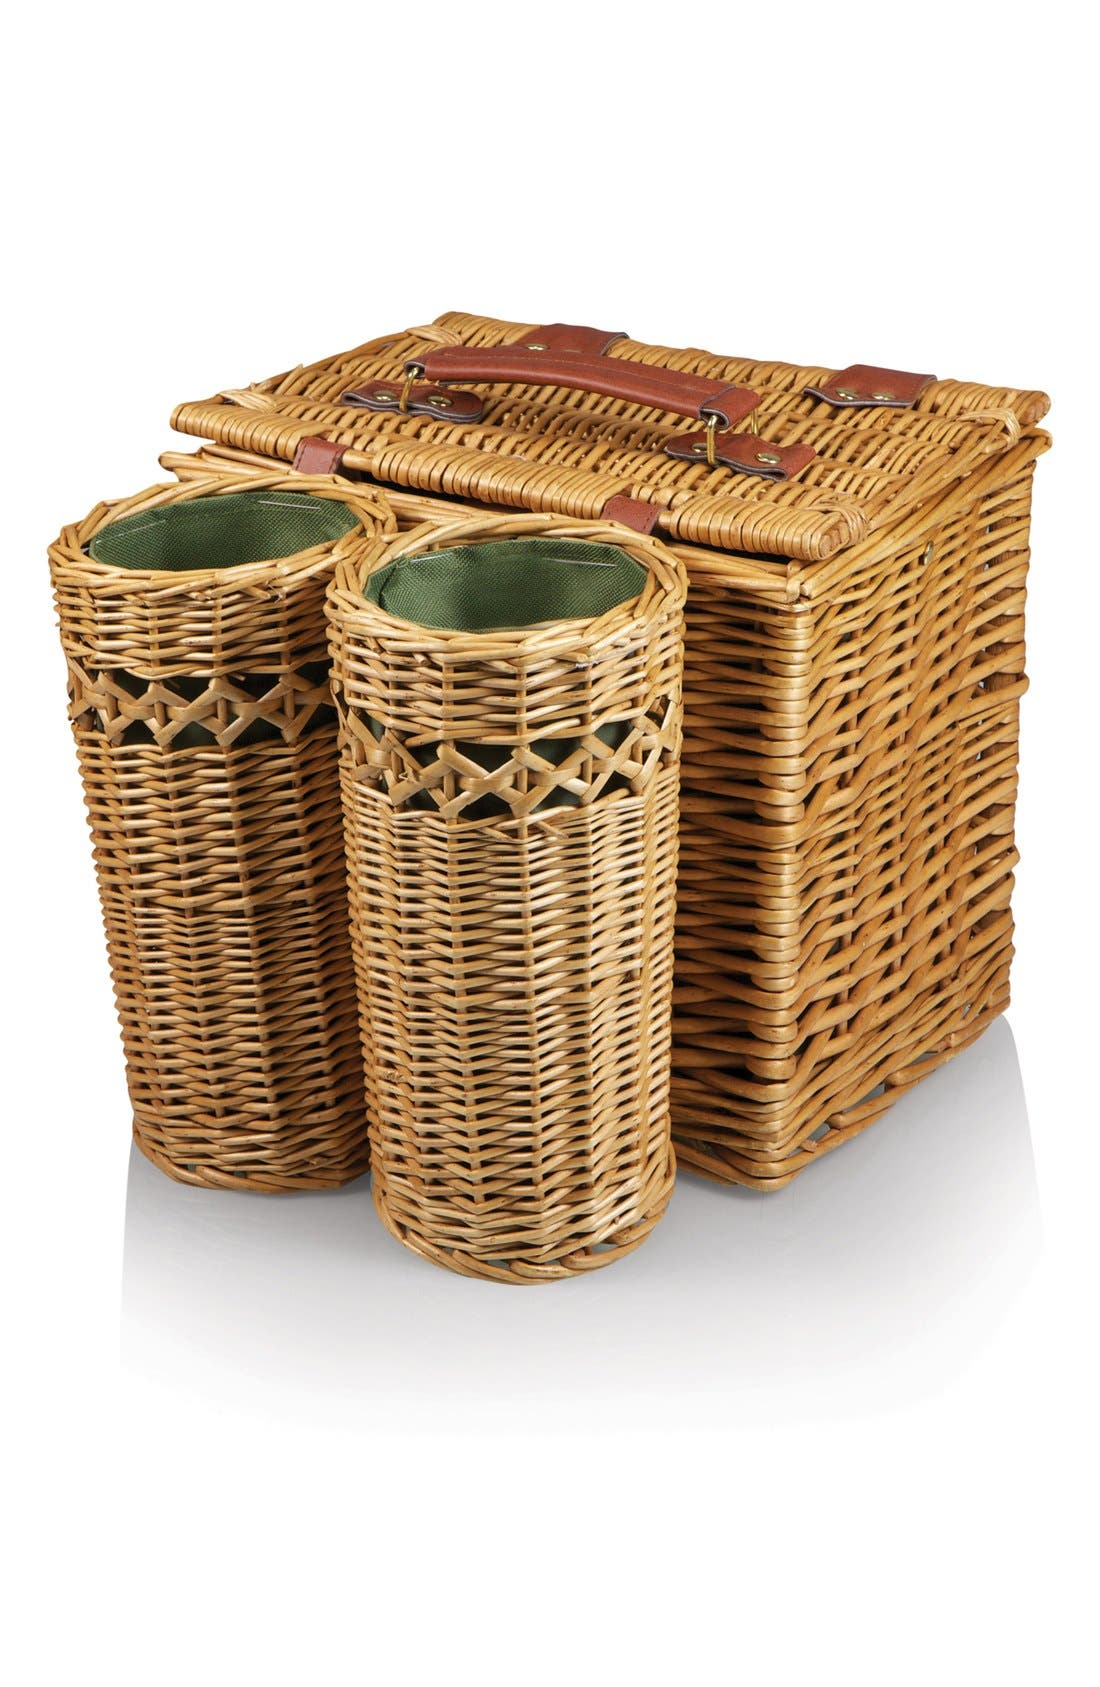 'Vino' Wine & Cheese Picnic Basket,                             Alternate thumbnail 2, color,                             Green